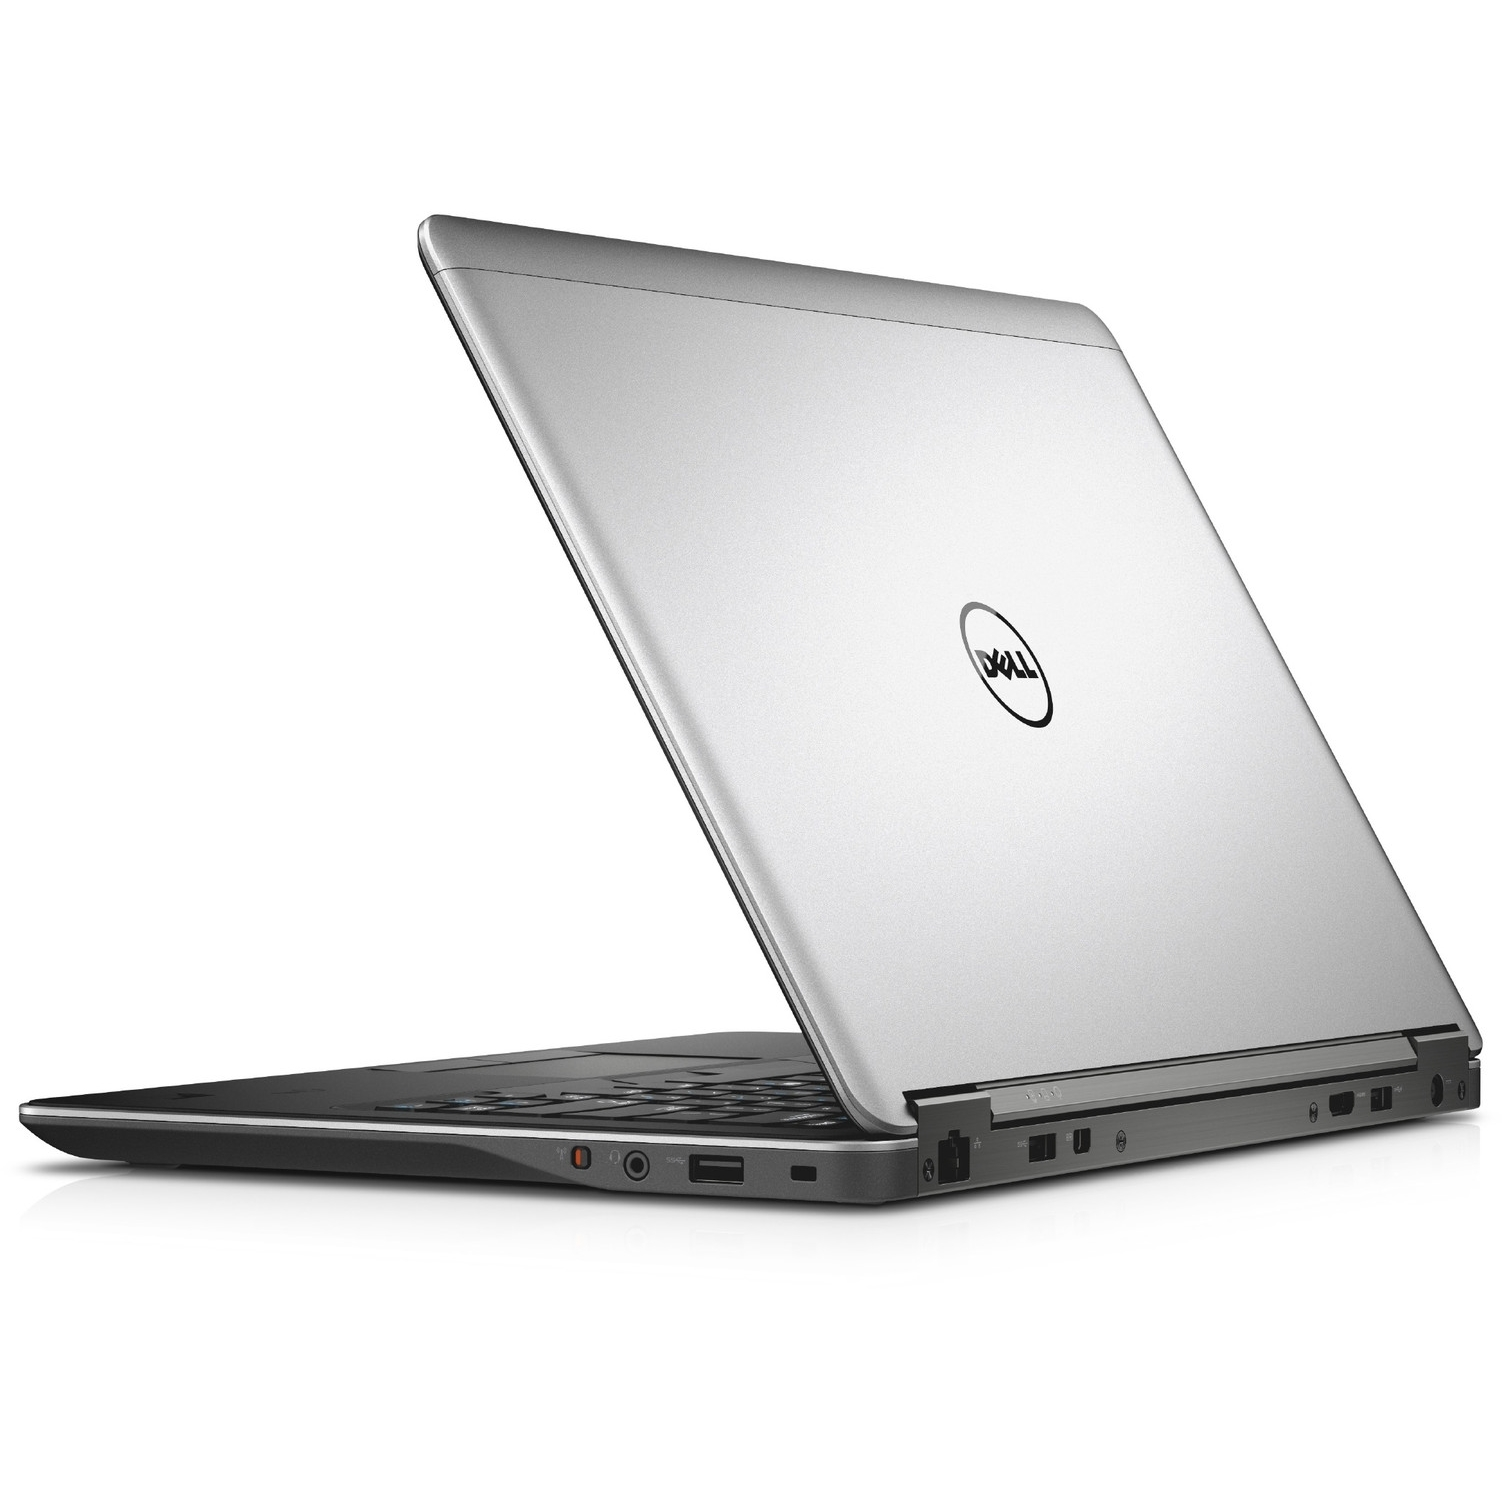 "Dell 14"" Laptop With Intel Core I5-4310 CPU, 8GB RAM, And..."